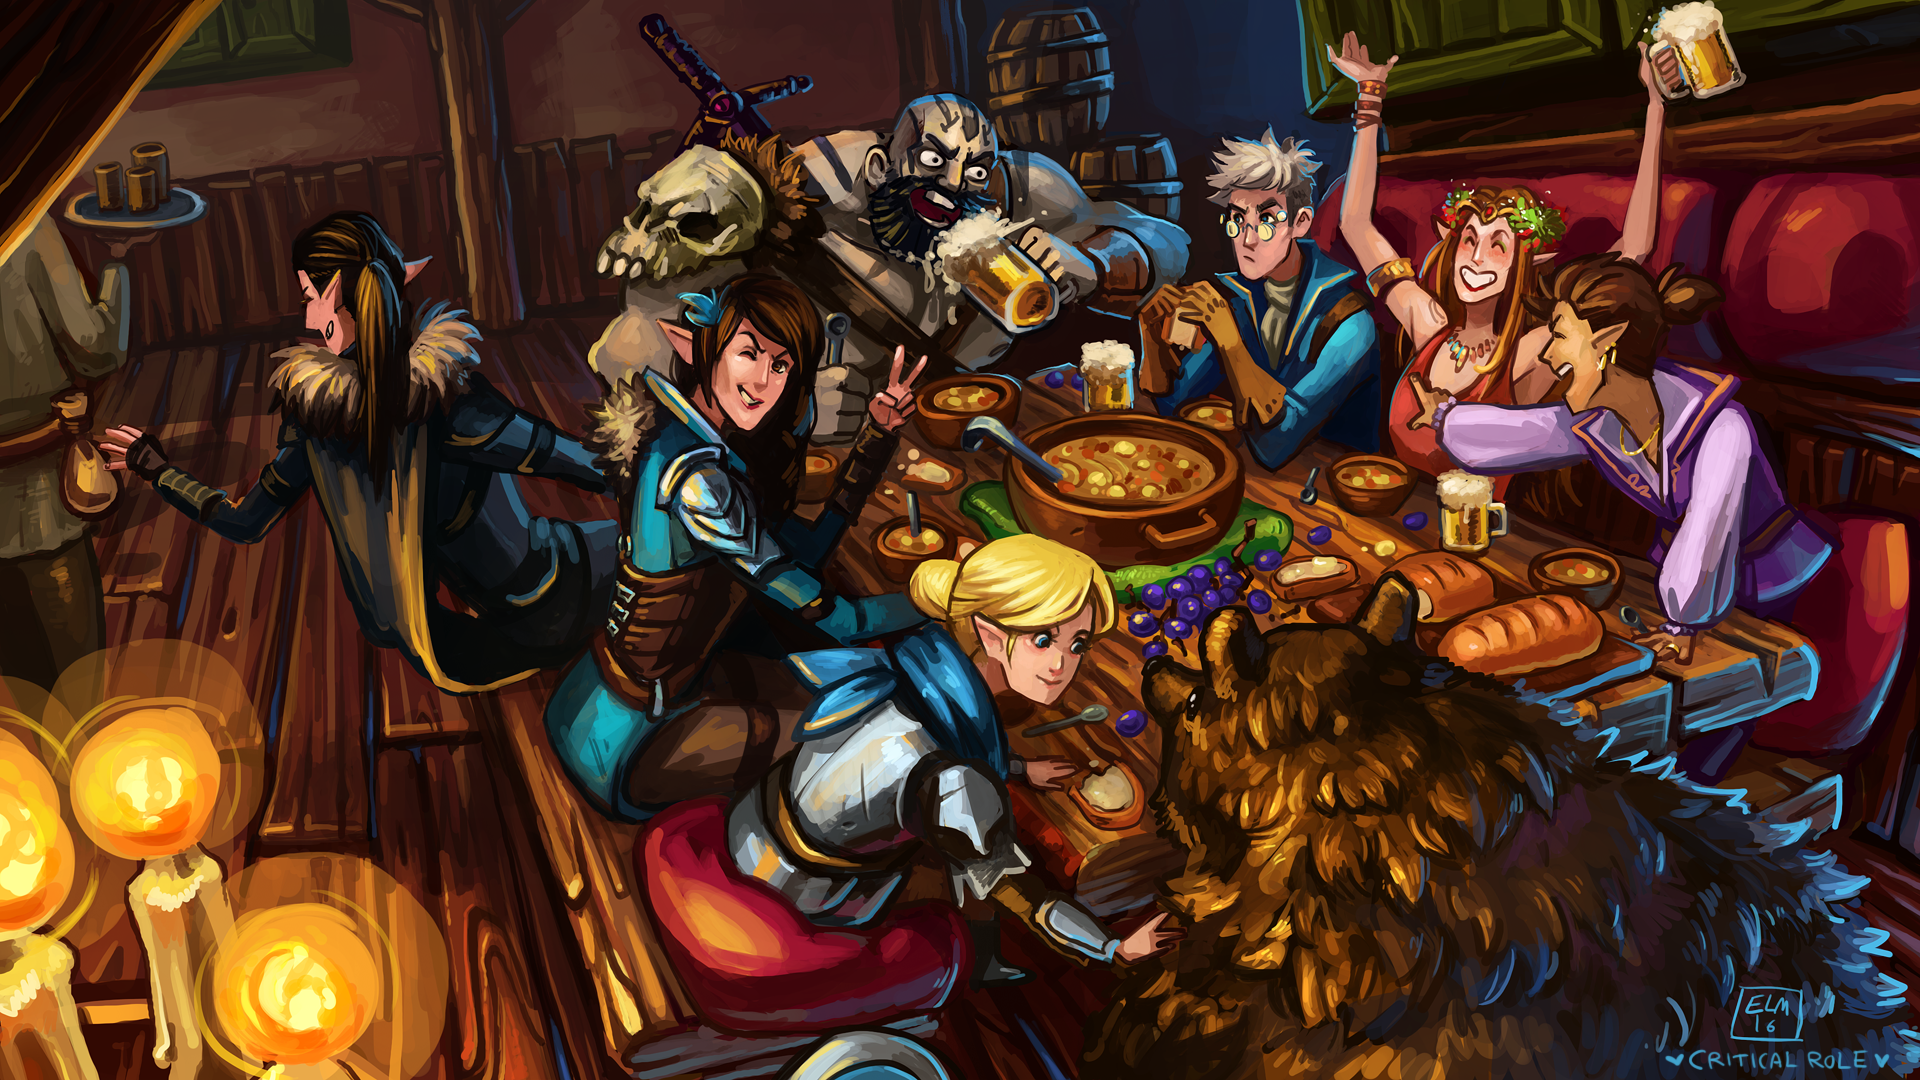 Critical Role Wallpaper 1920x1080 I was one of 70 artists in the criticla role 50th episode fan art gallery. wallpaper iphone hd 4k